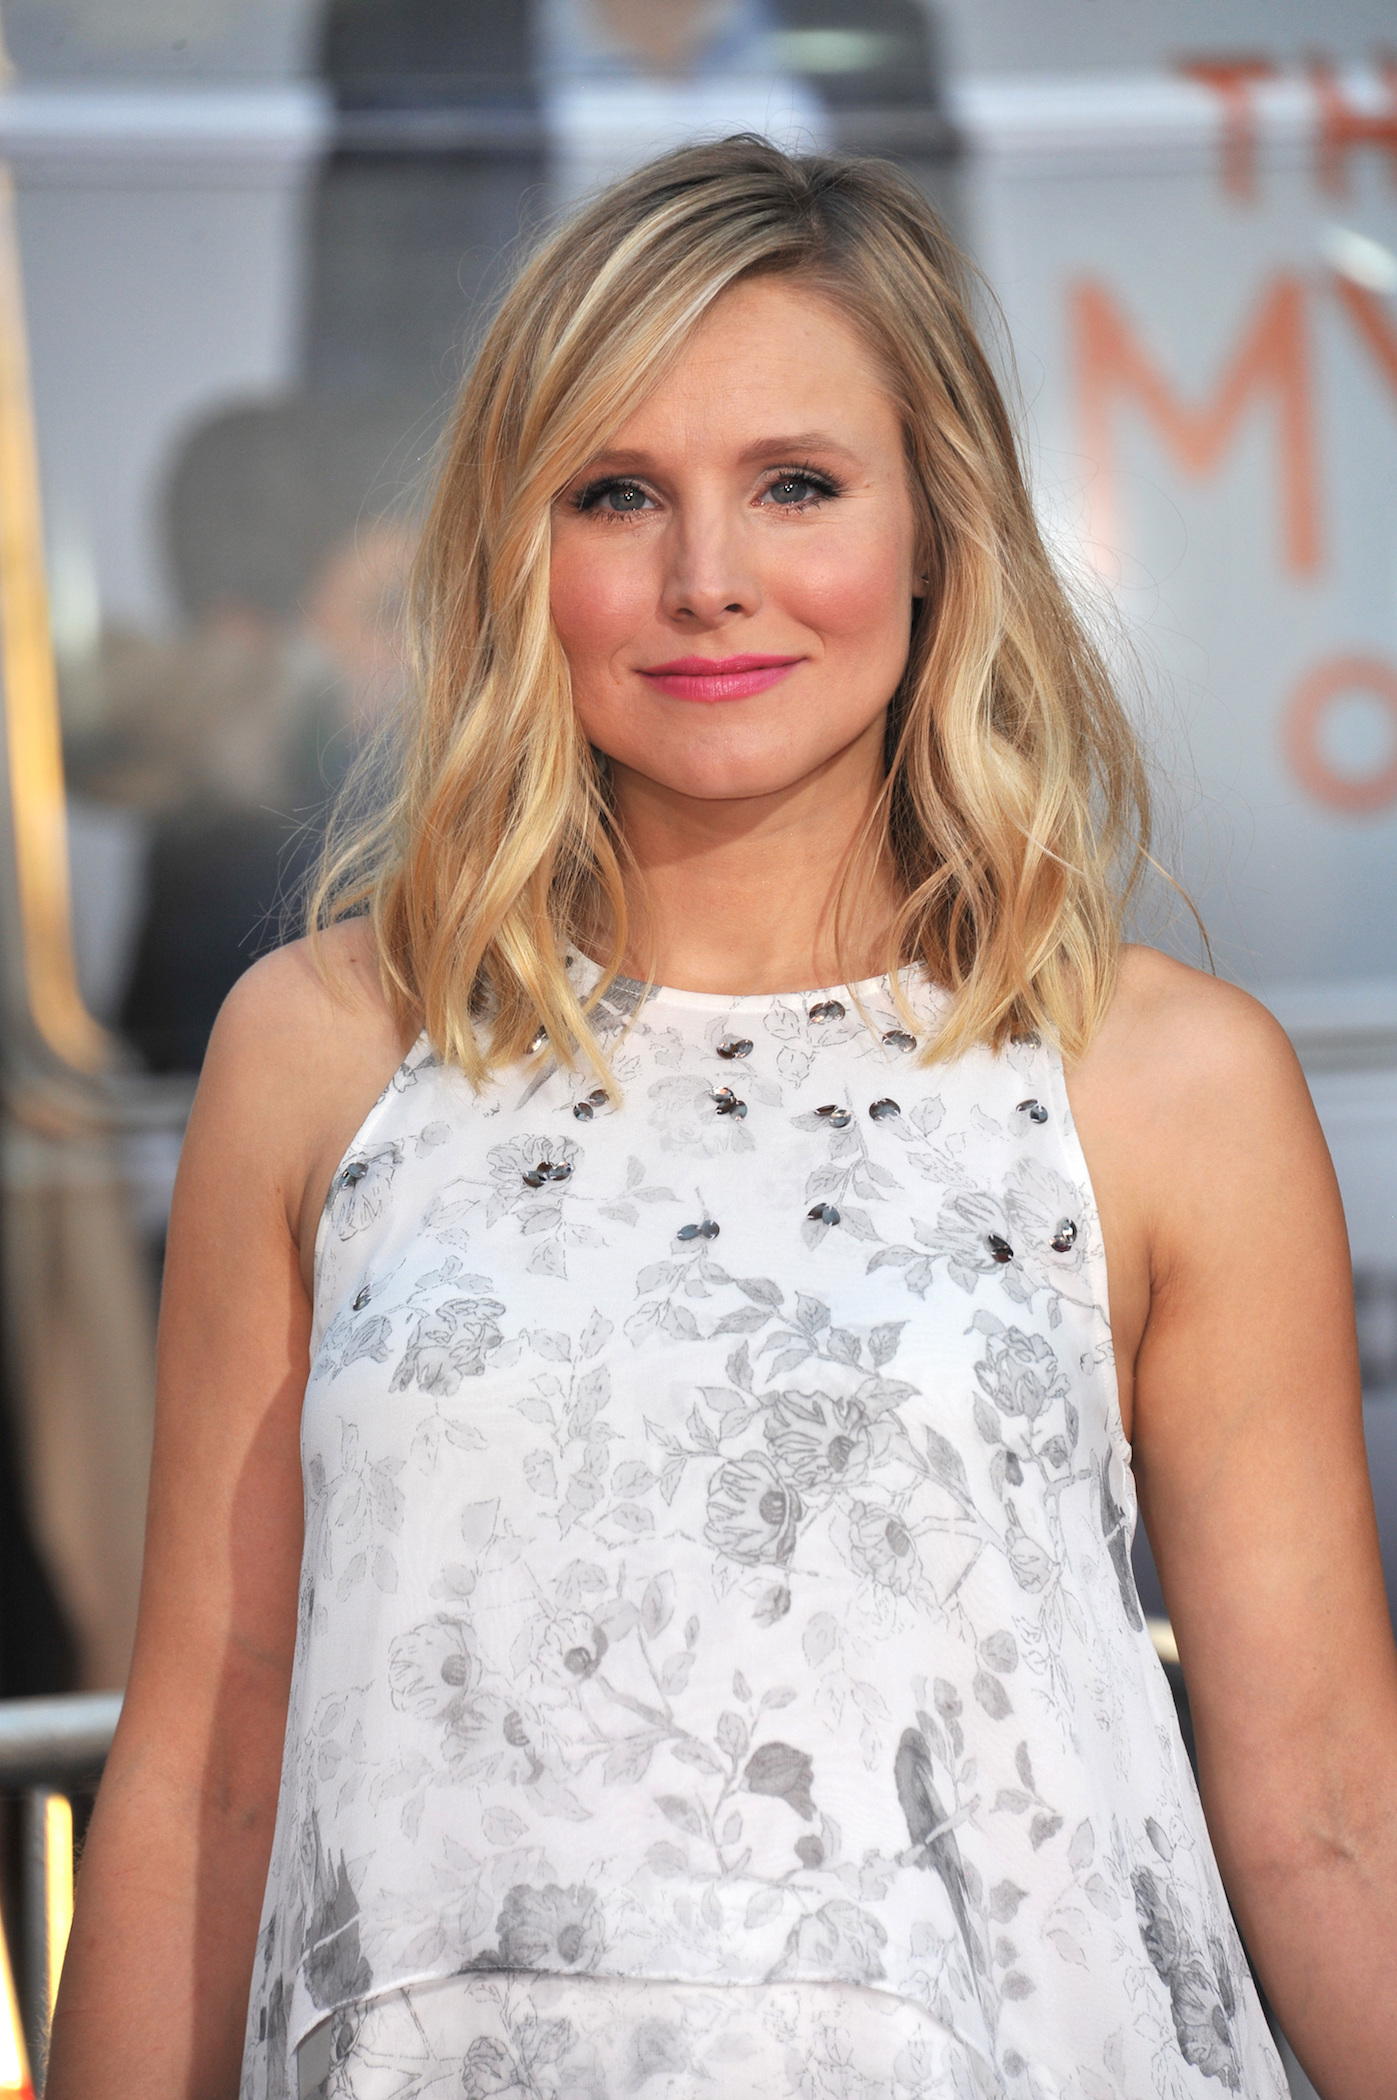 Who Is Kristen Bell 5 Facts You Need To Know About The Hollywood Star